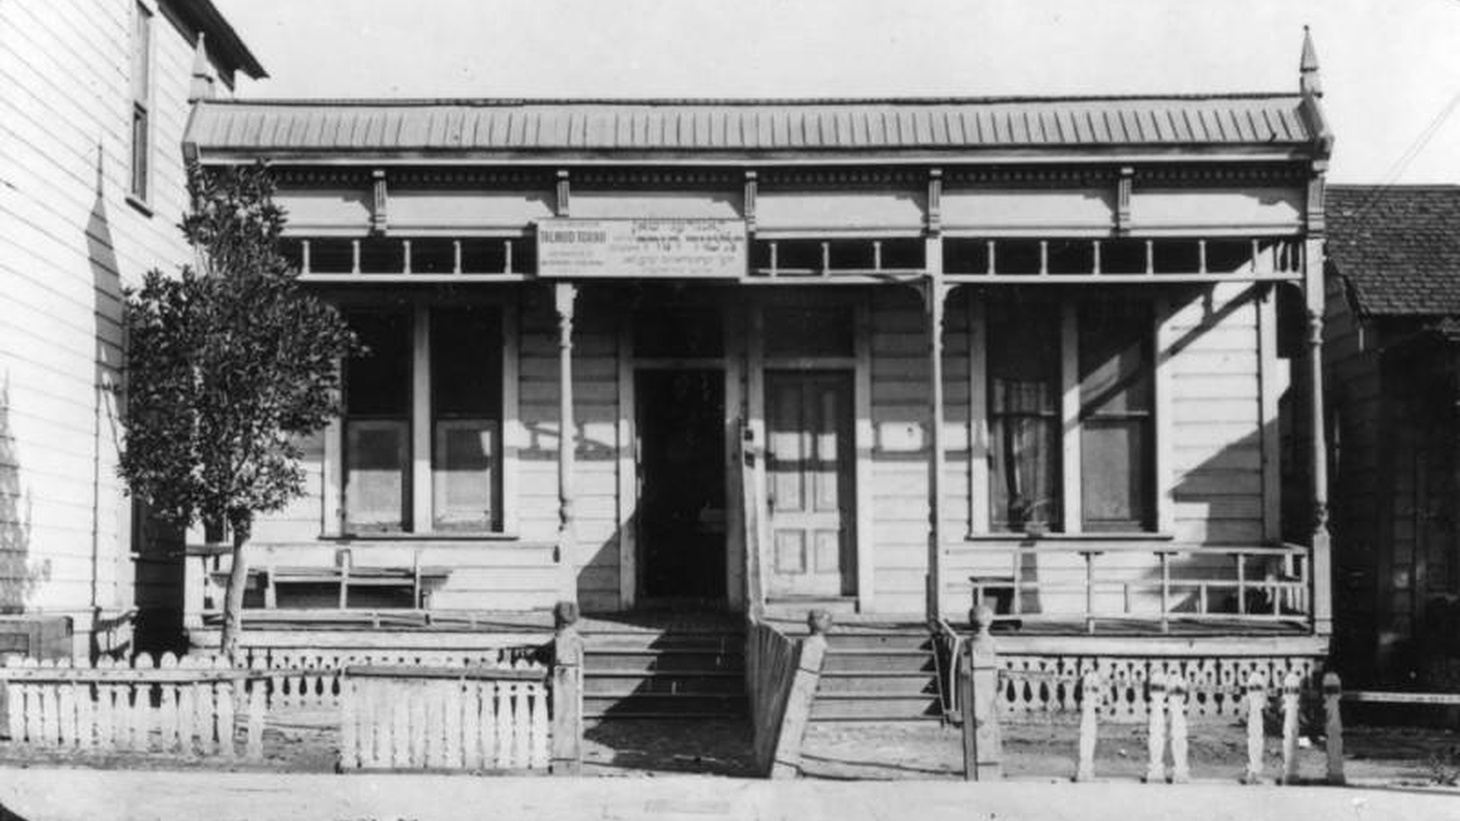 In 1917, the Talmud Torah Synagogue was located in a smaller wooden building about the size of a single-story apartment house. It was located then at 114 Rose Street in Boyle Heights.